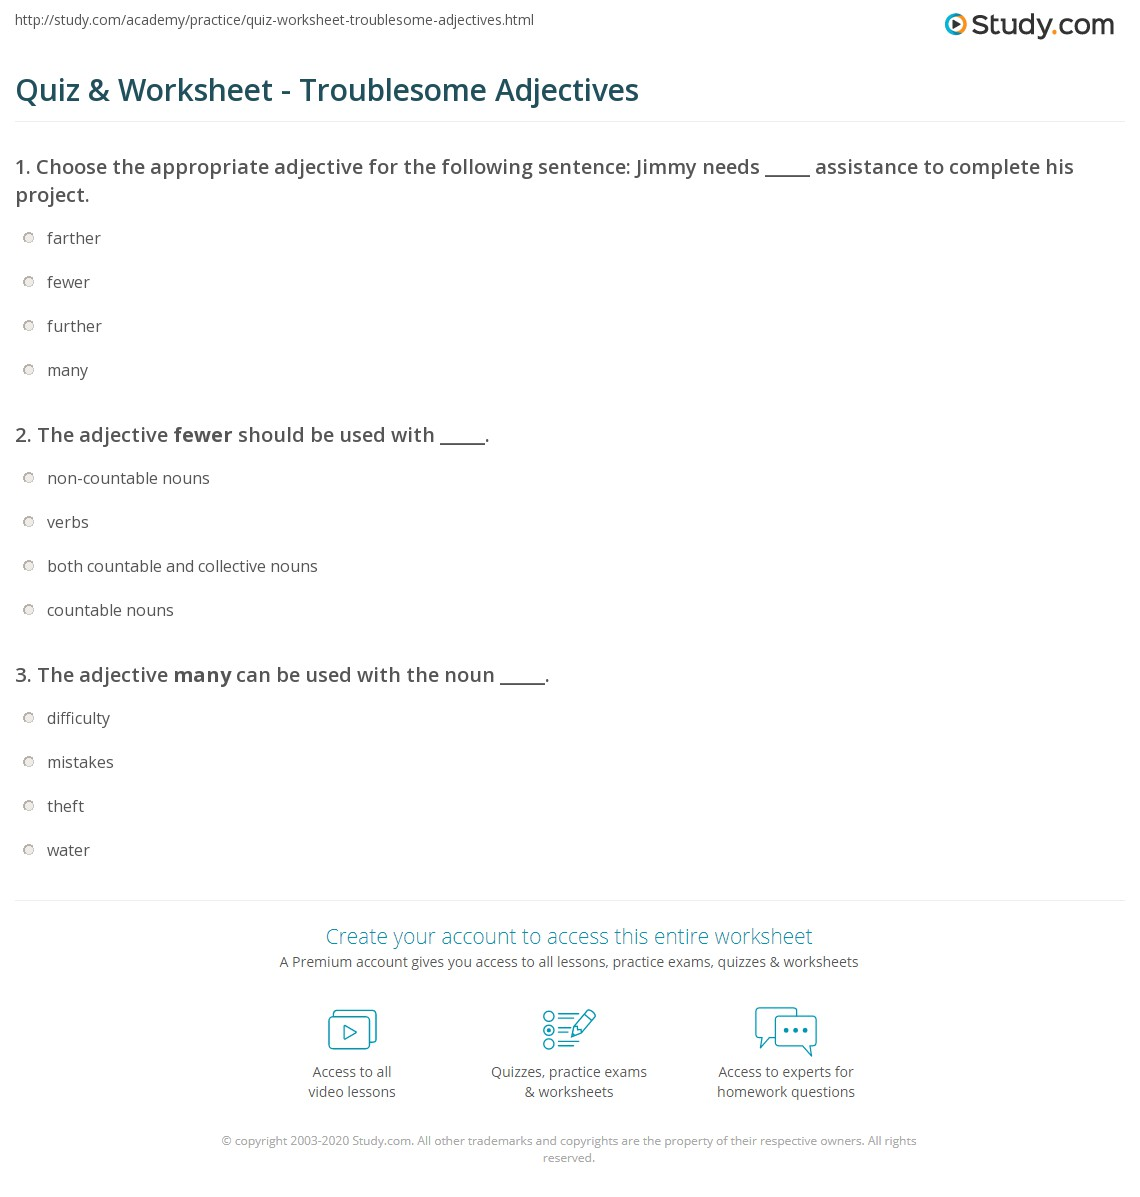 Quiz Worksheet Troublesome Adjectives Study